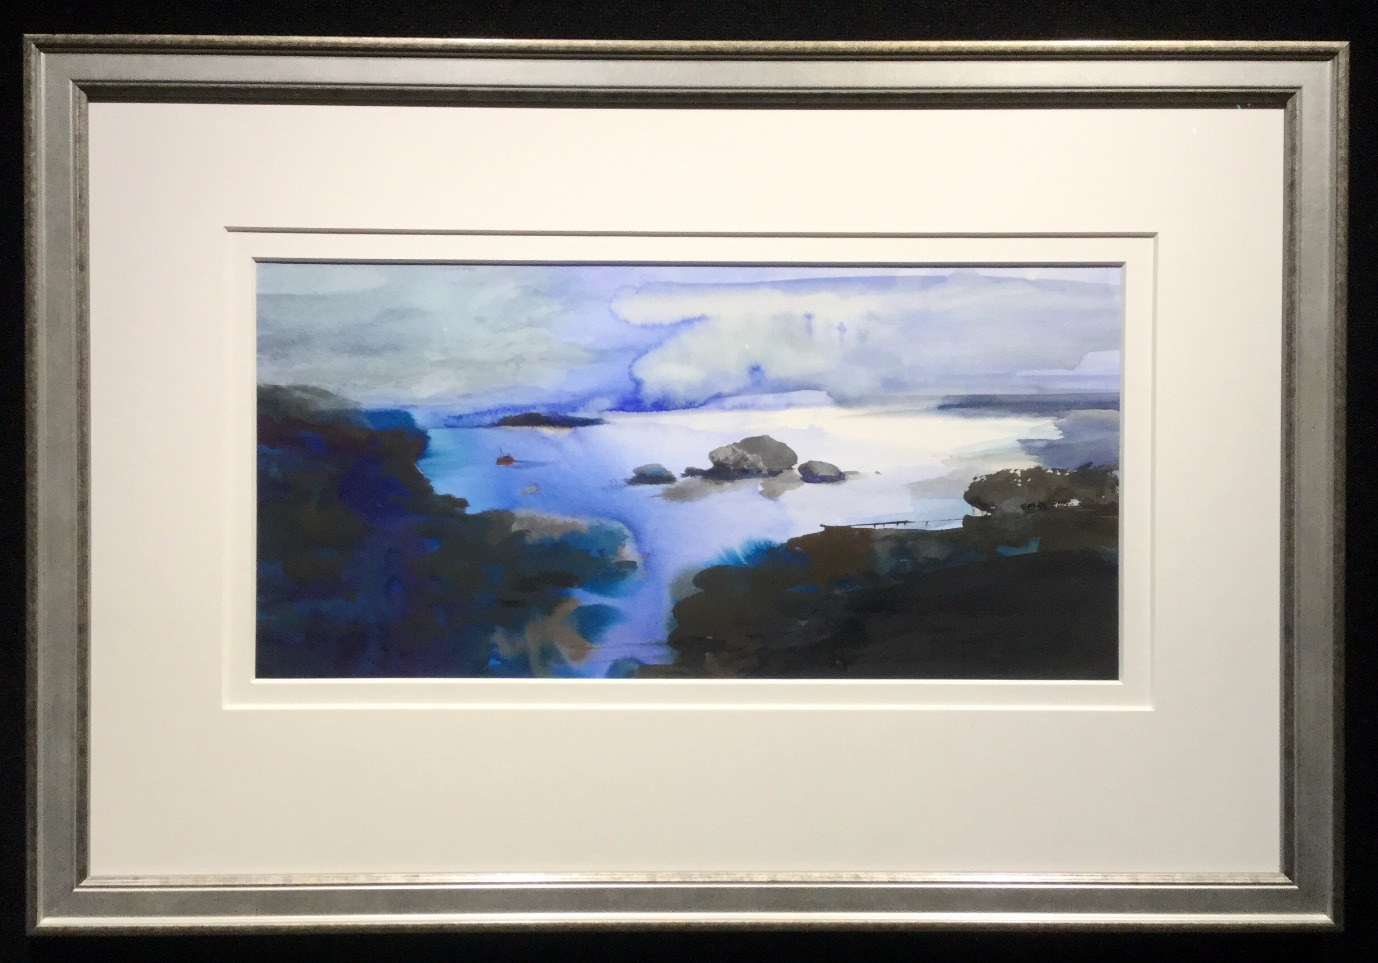 Homeward Bound by Sue Howells, Landscape | Sea | Water